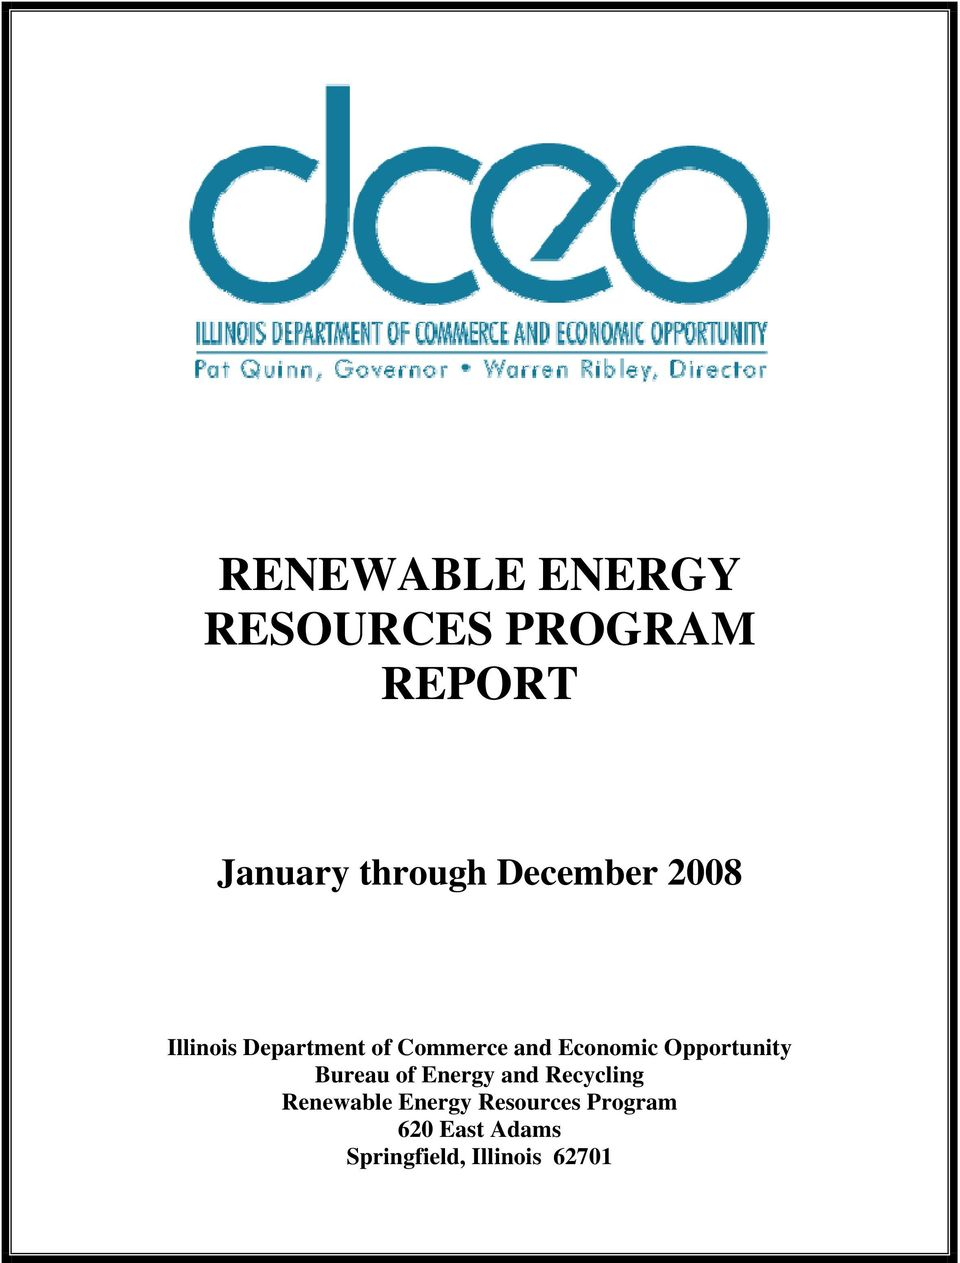 Opportunity Bureau of Energy and Recycling Renewable Energy